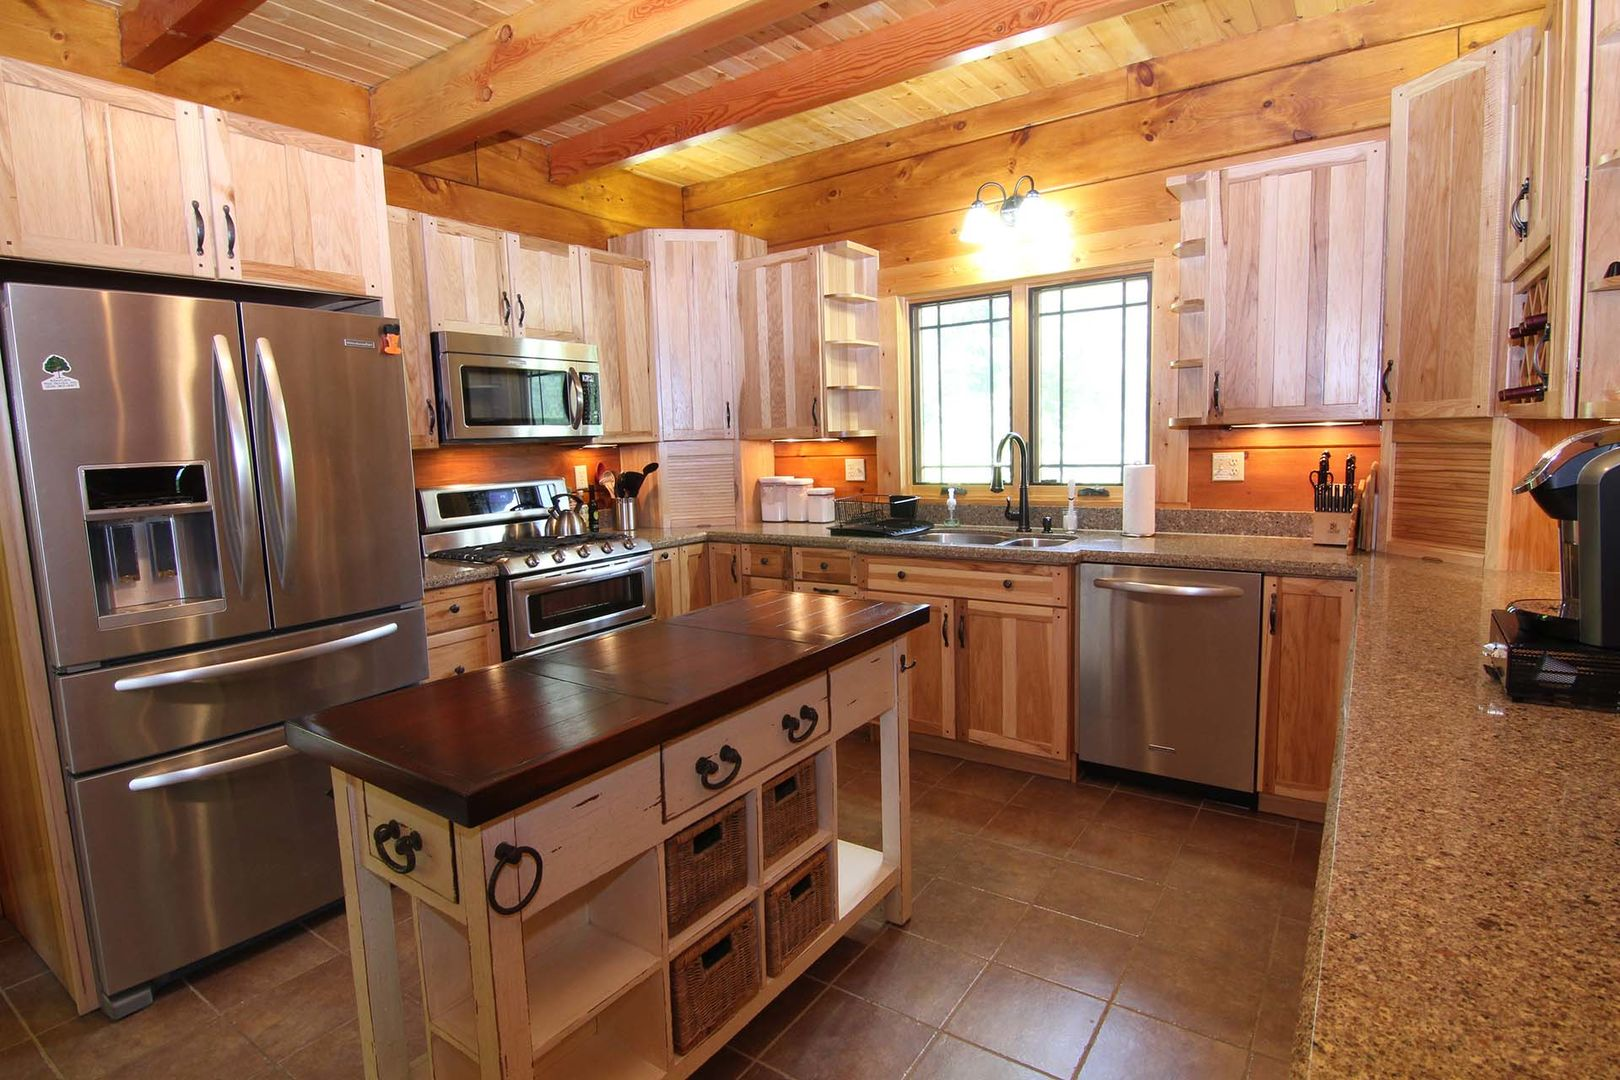 Well-equipped kitchen with butcher block island